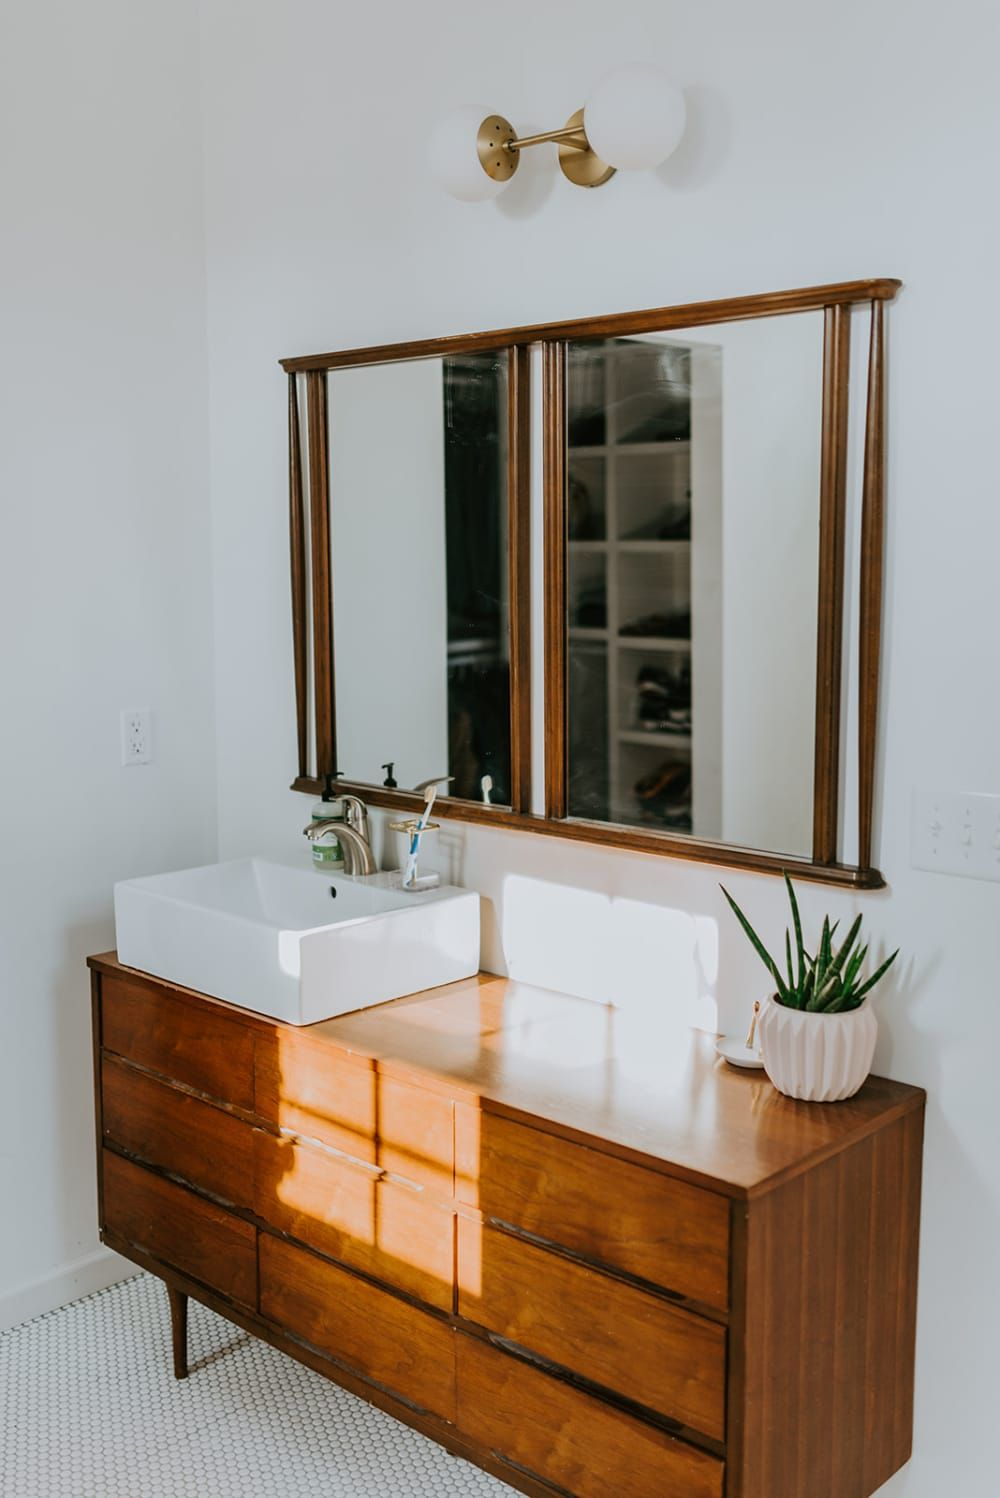 This Minimal Renovated Boho Home Has Plant and Art Displaying Ideas in Every Room #bathingbeauties